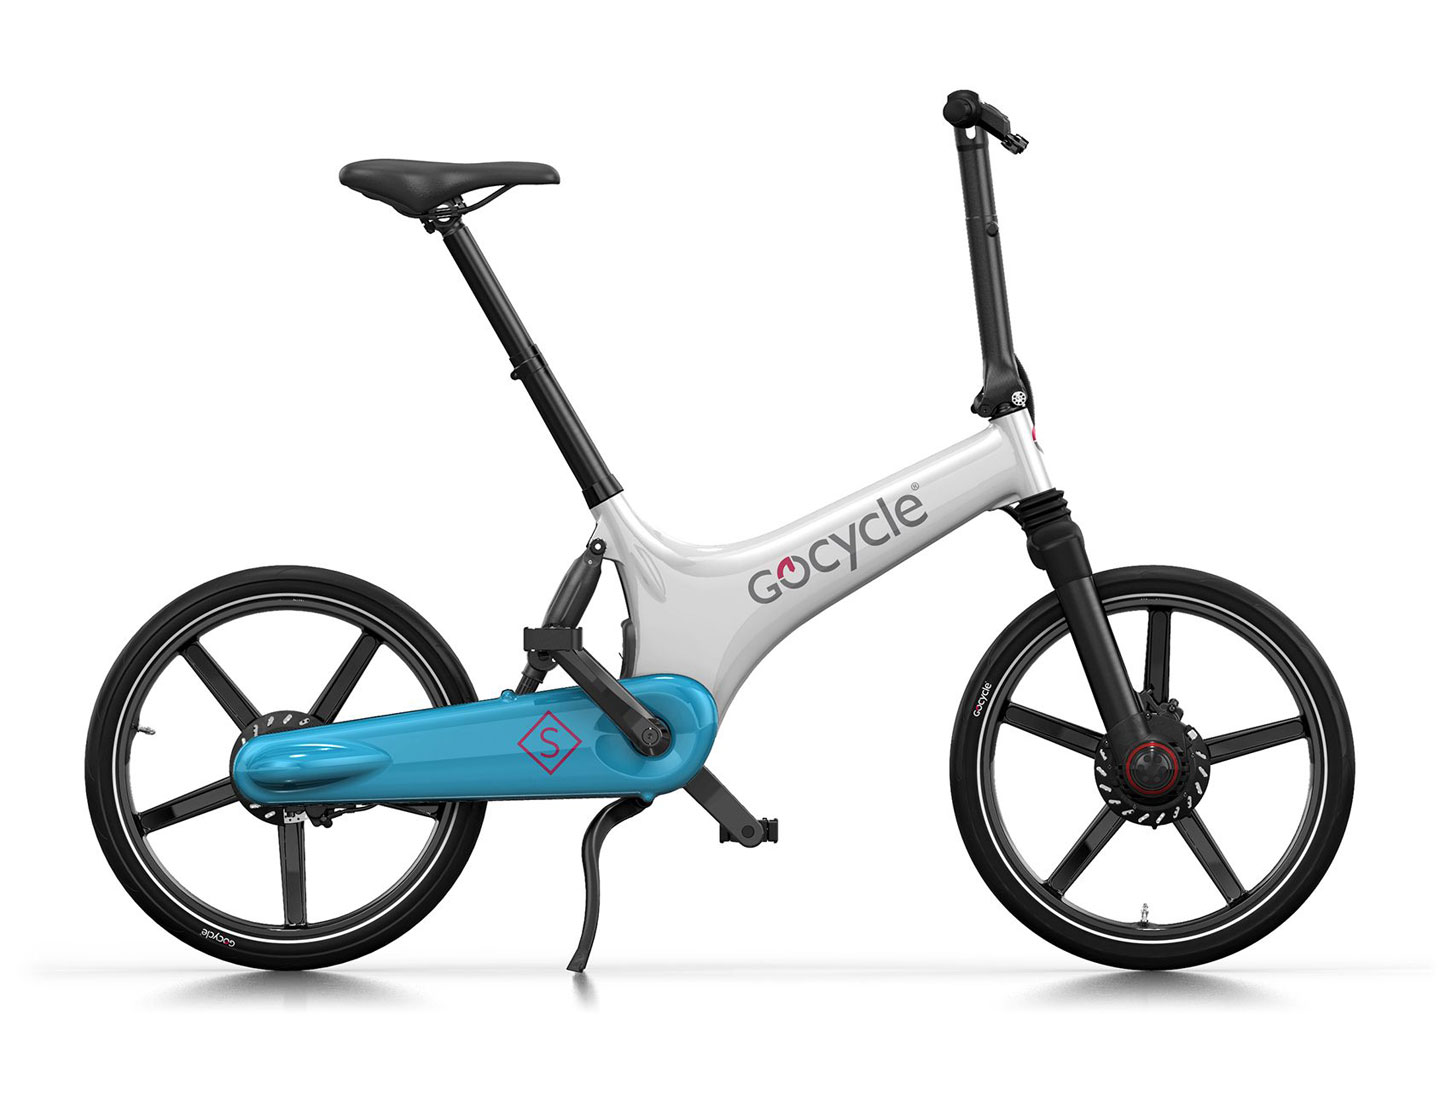 Gocycle GS White